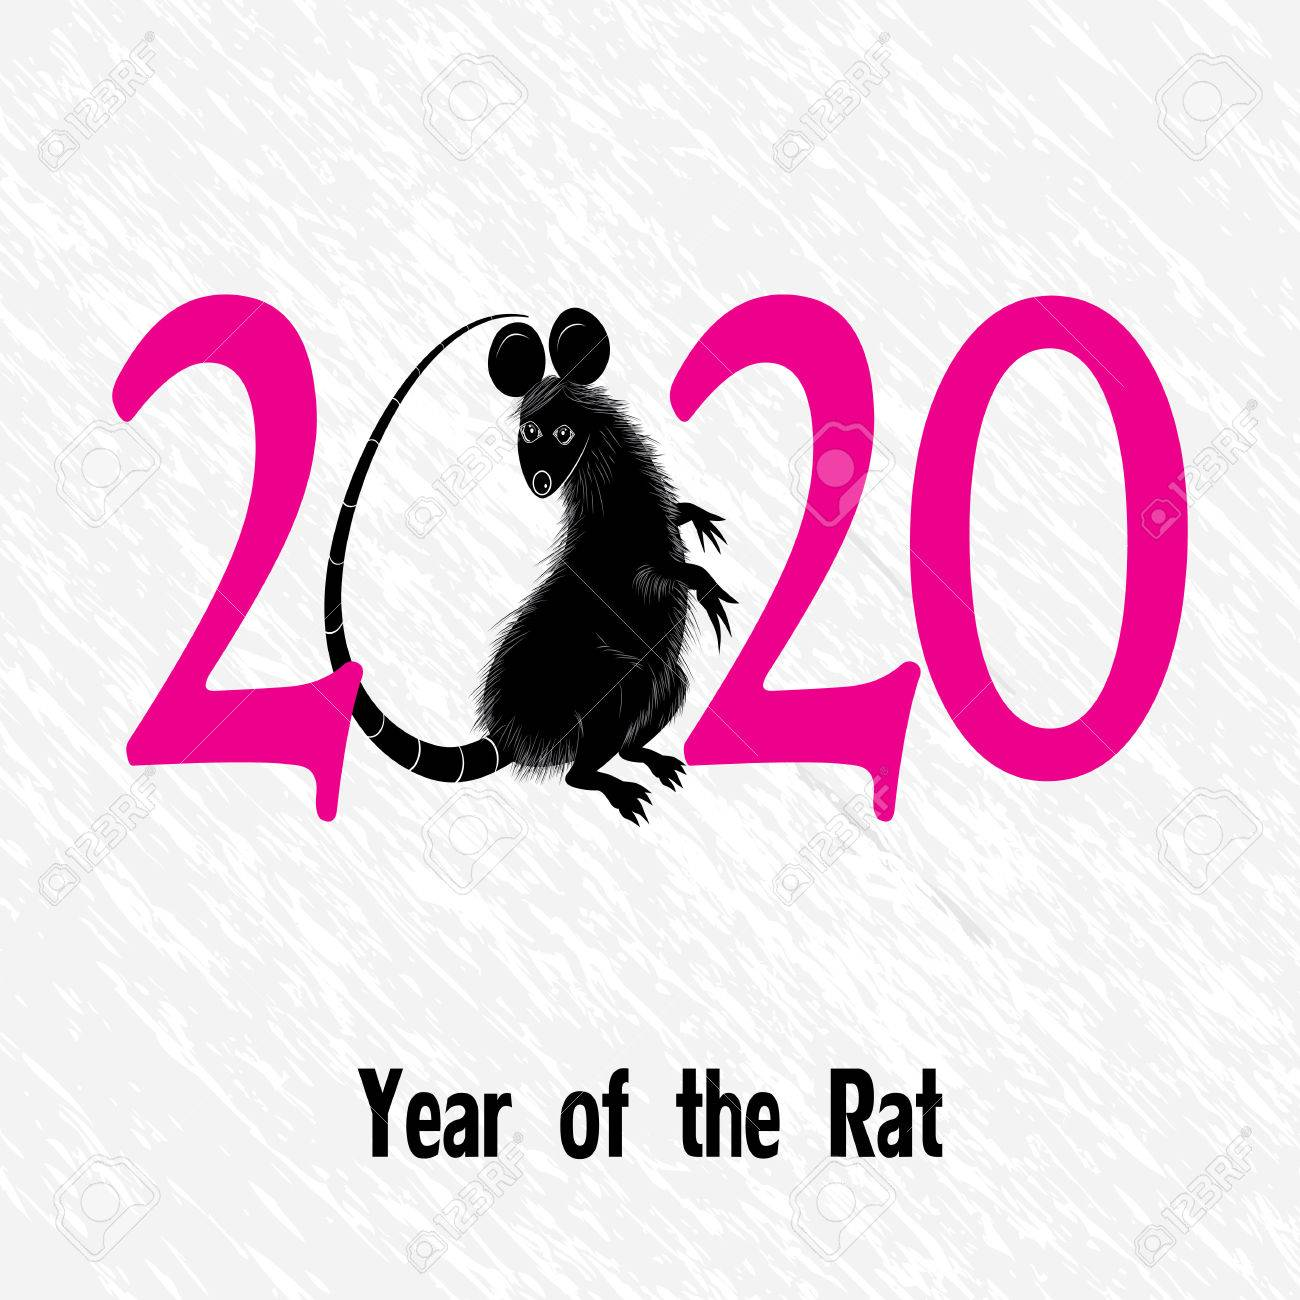 Rat, mouse as symbol for year 2020 by Chinese traditional horoscope